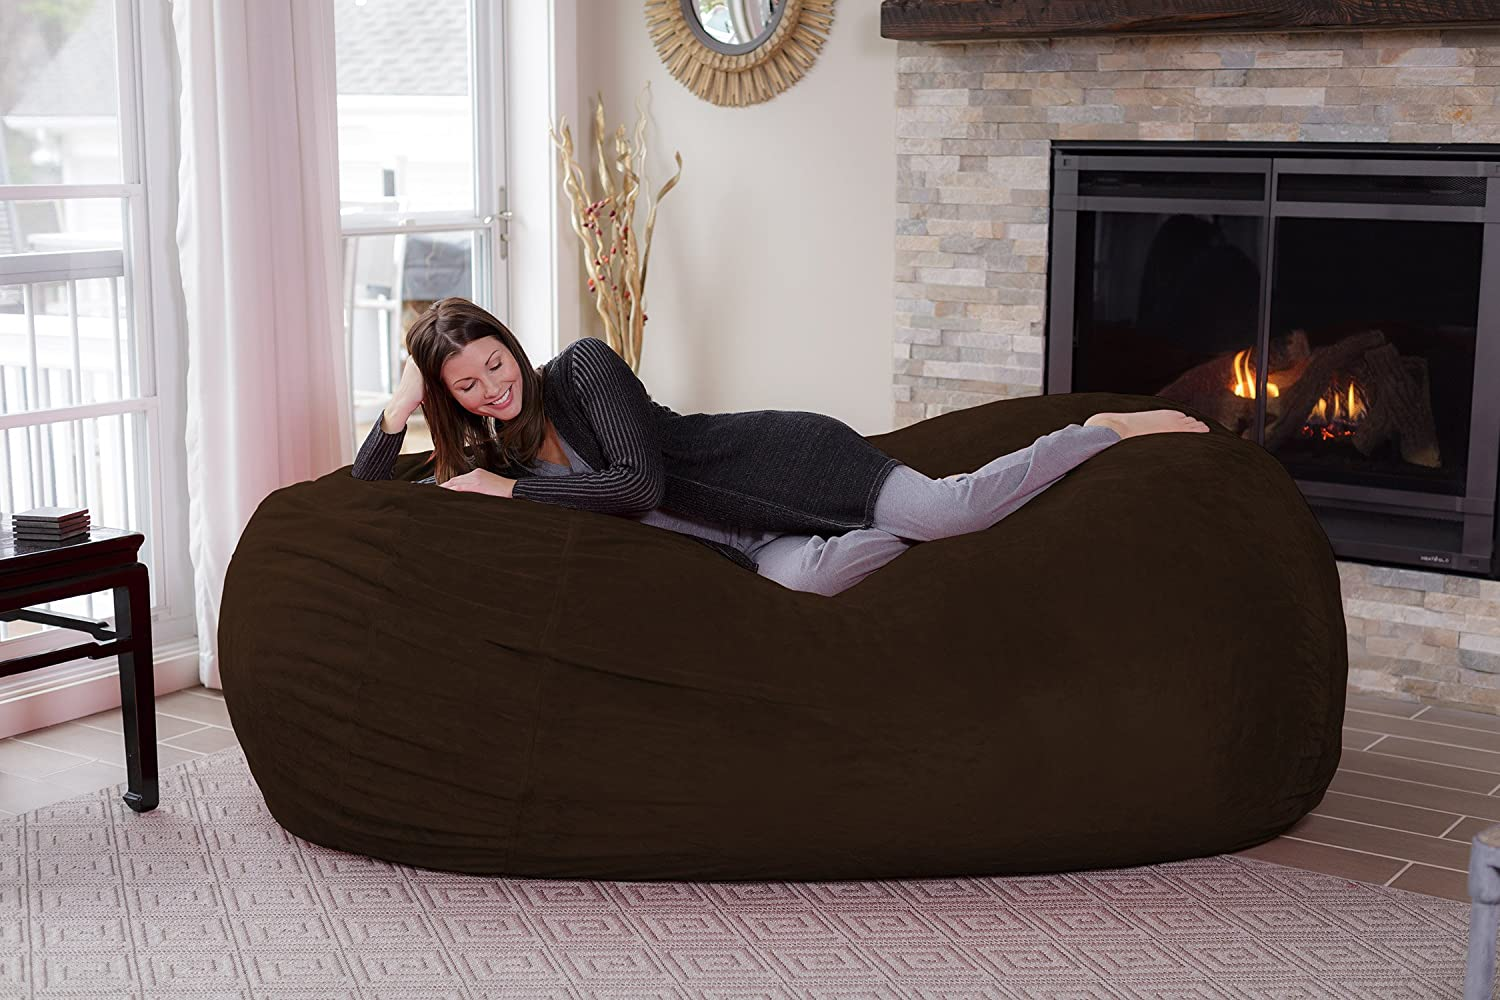 Huge 7.5 Memory Foam Furniture Bag and Large Lounger Big Sofa with Soft Micro Fiber Cover Chill Sack Bean Bag Chair Pink